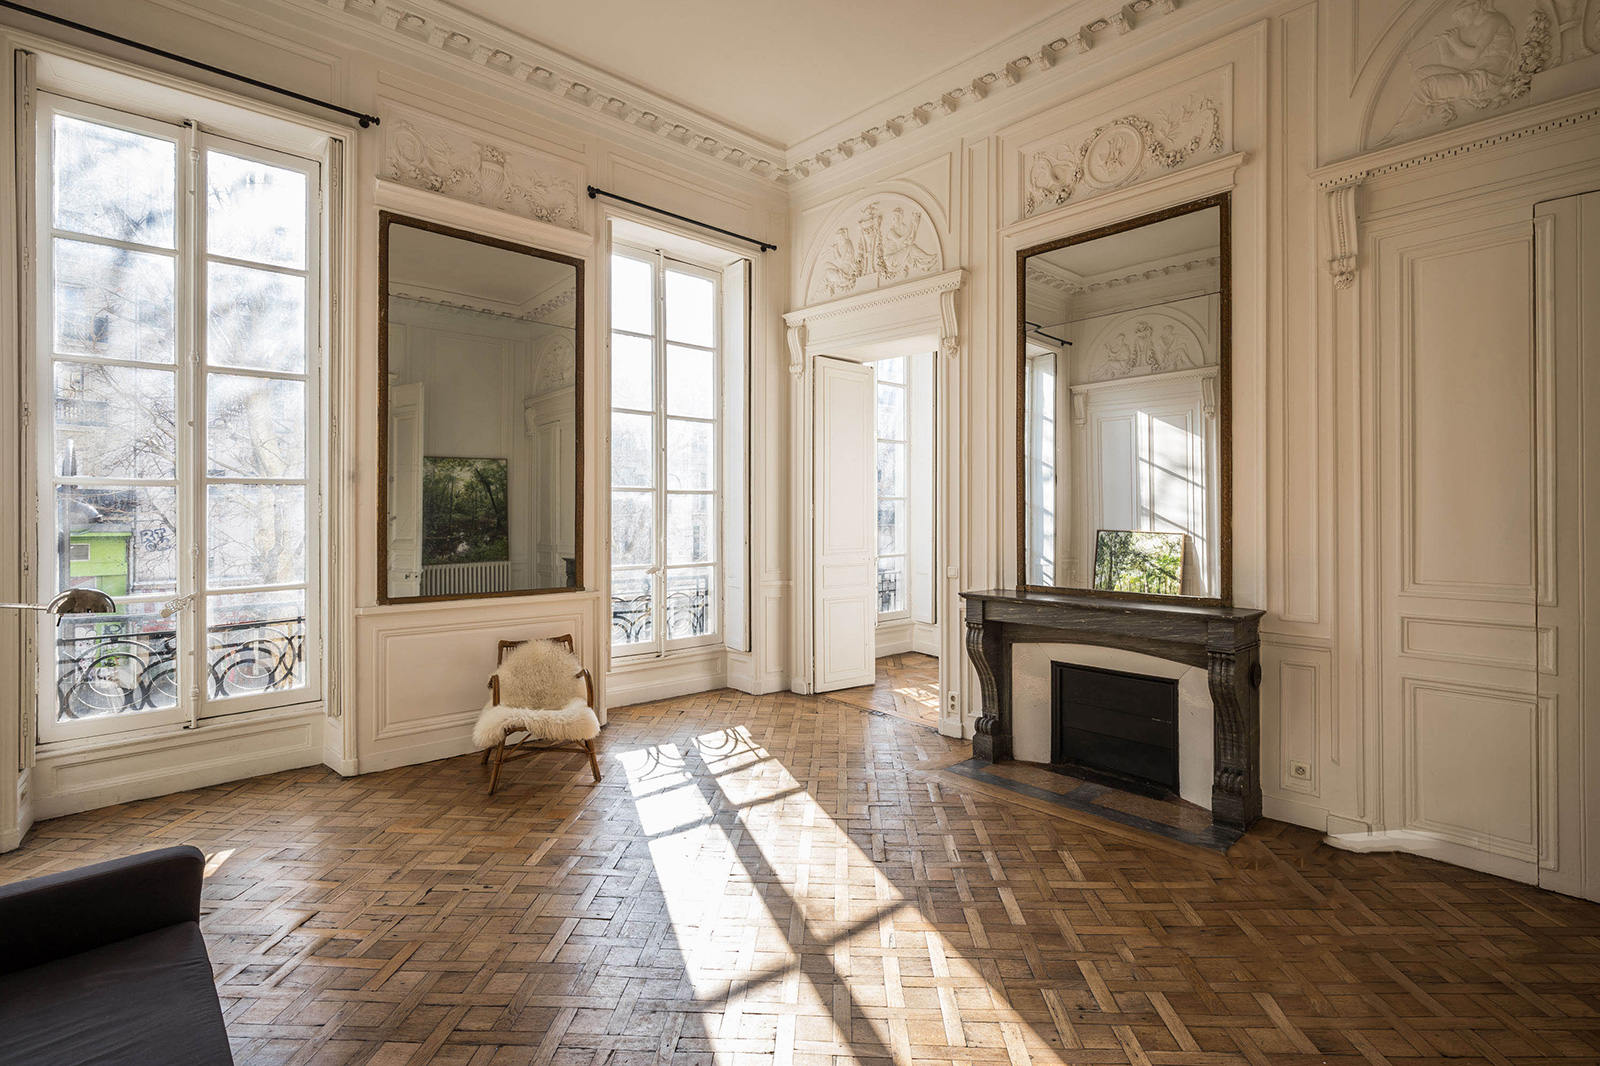 6 exceptional Paris properties for sale right now - The Spaces